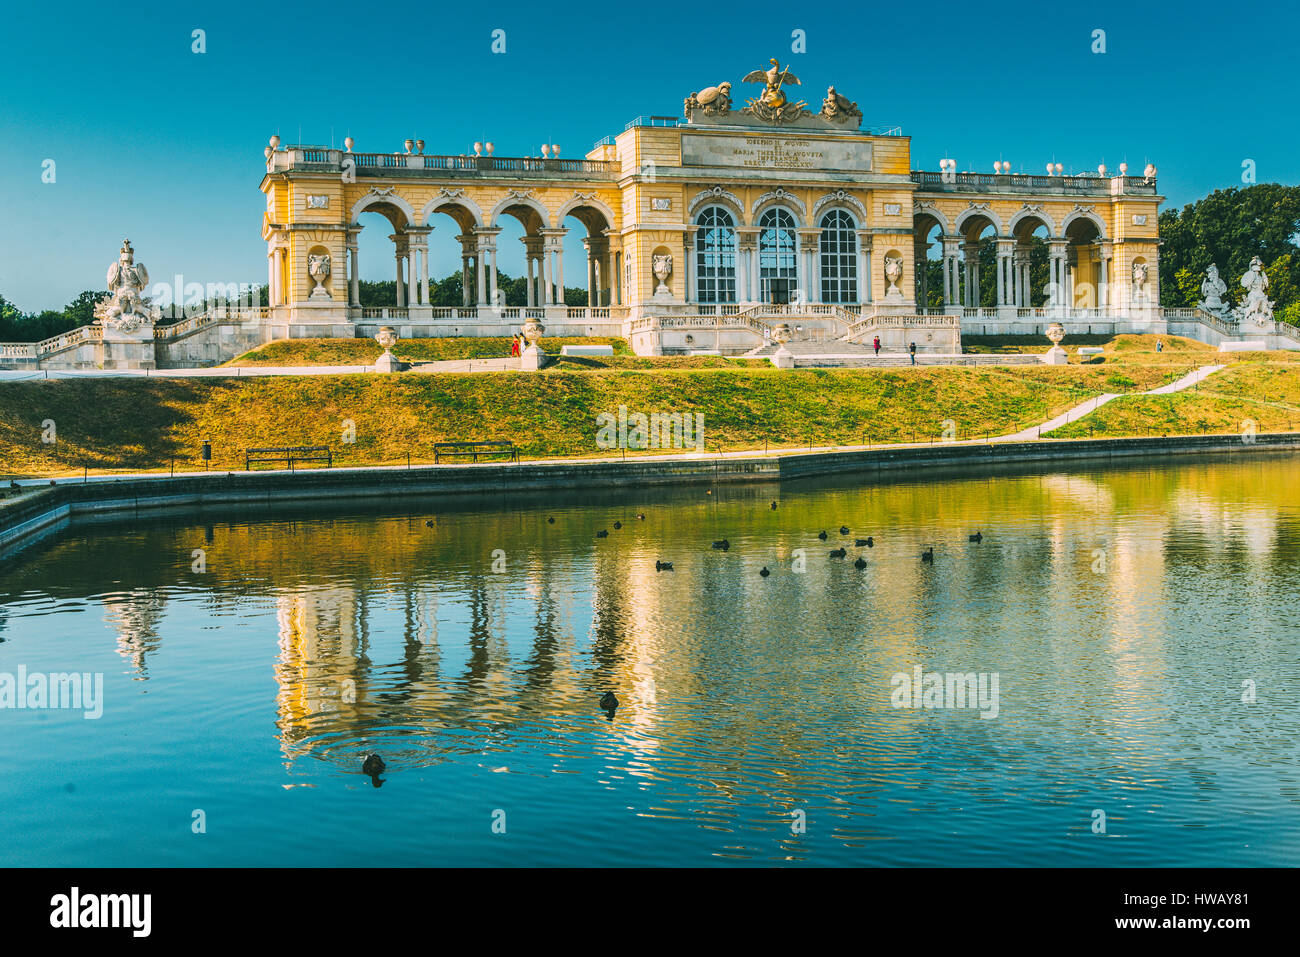 Gloriette in Schoenbrunn Palace garden in summer early morning light, Vienna, Austria Stock Photo